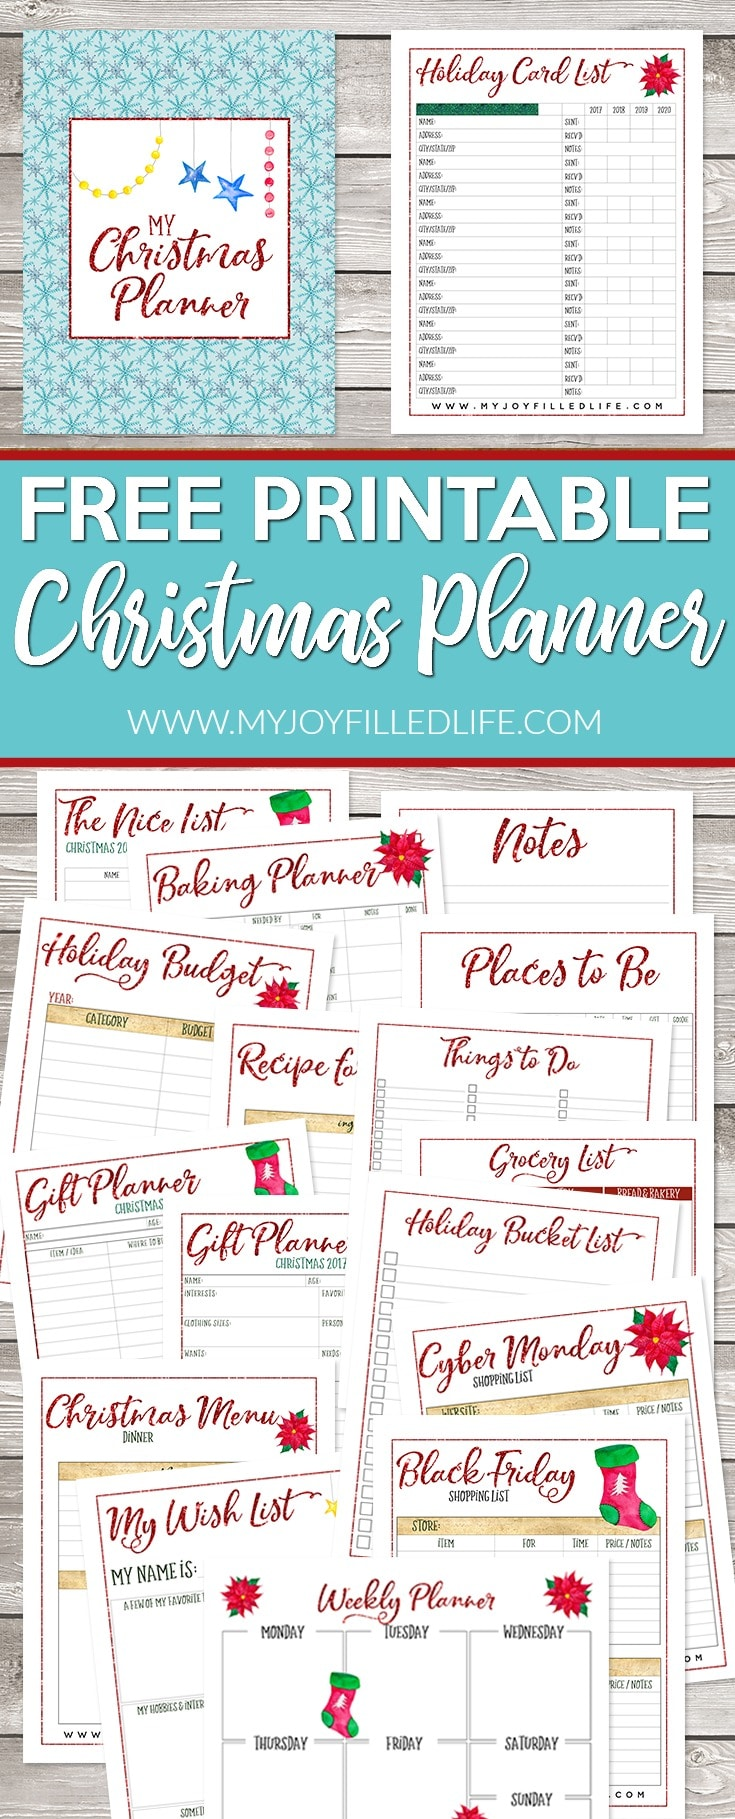 photograph regarding Free Printable Christmas Planner referred to as No cost Printable Planner for Christmastime - Homeschool Giveaways